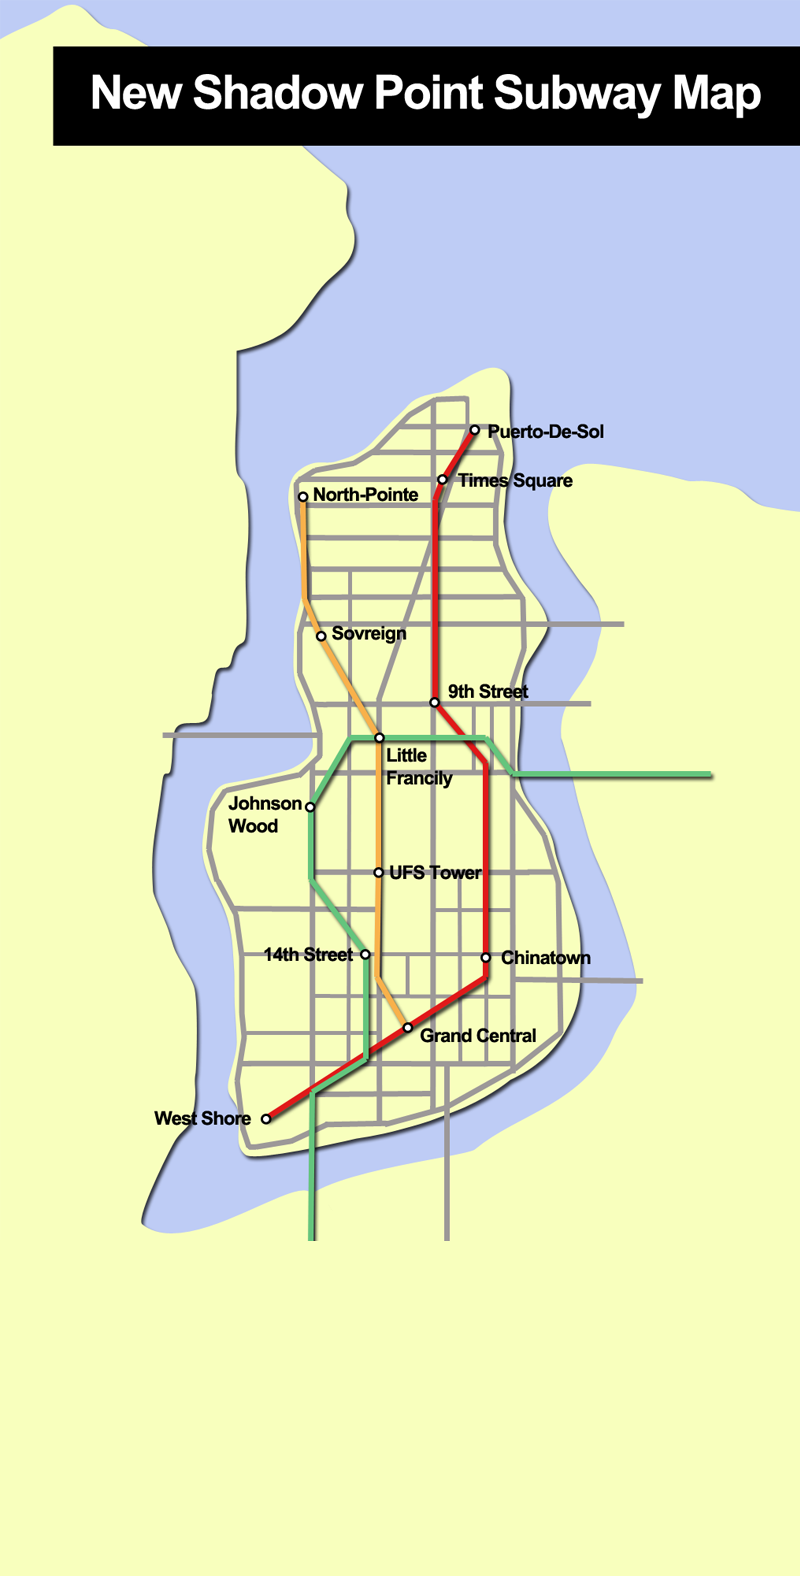 NSP Subway Map